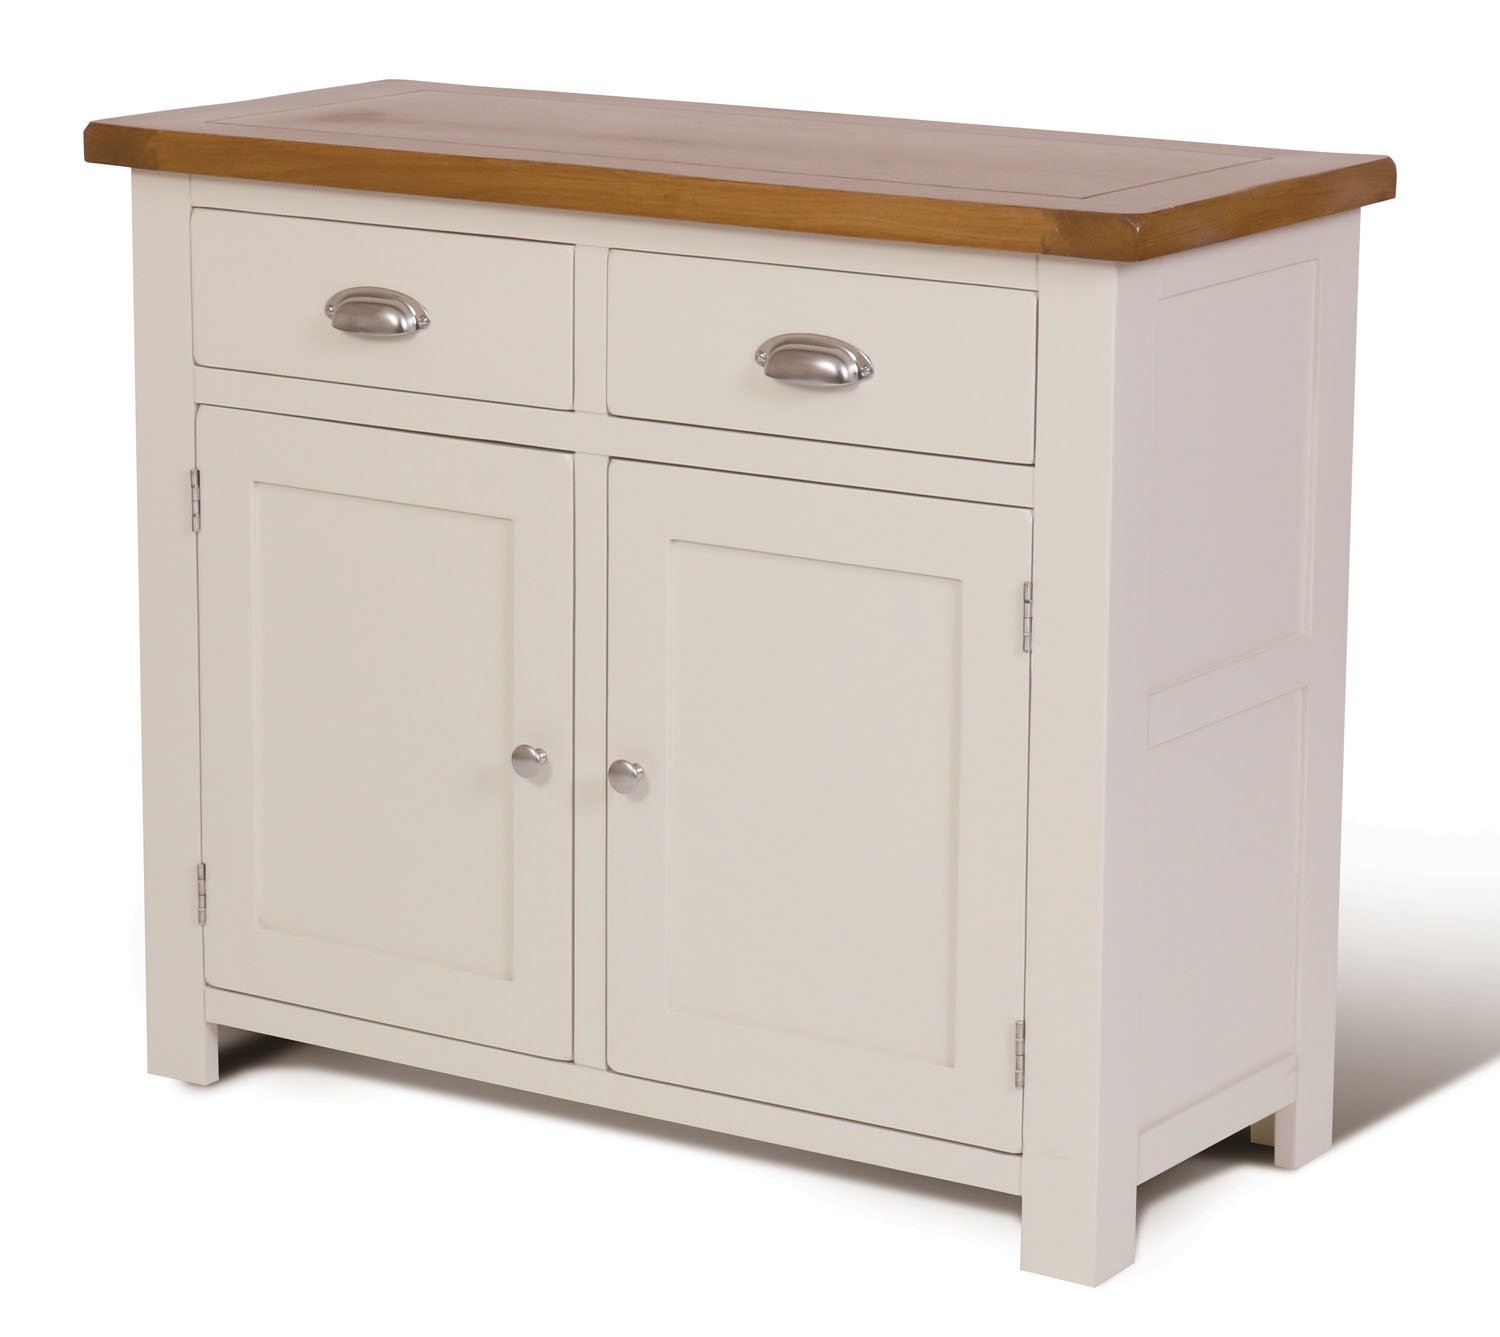 Ascot Oak 2 Door Drawer Small Sideboard And Stone White Painted Finish